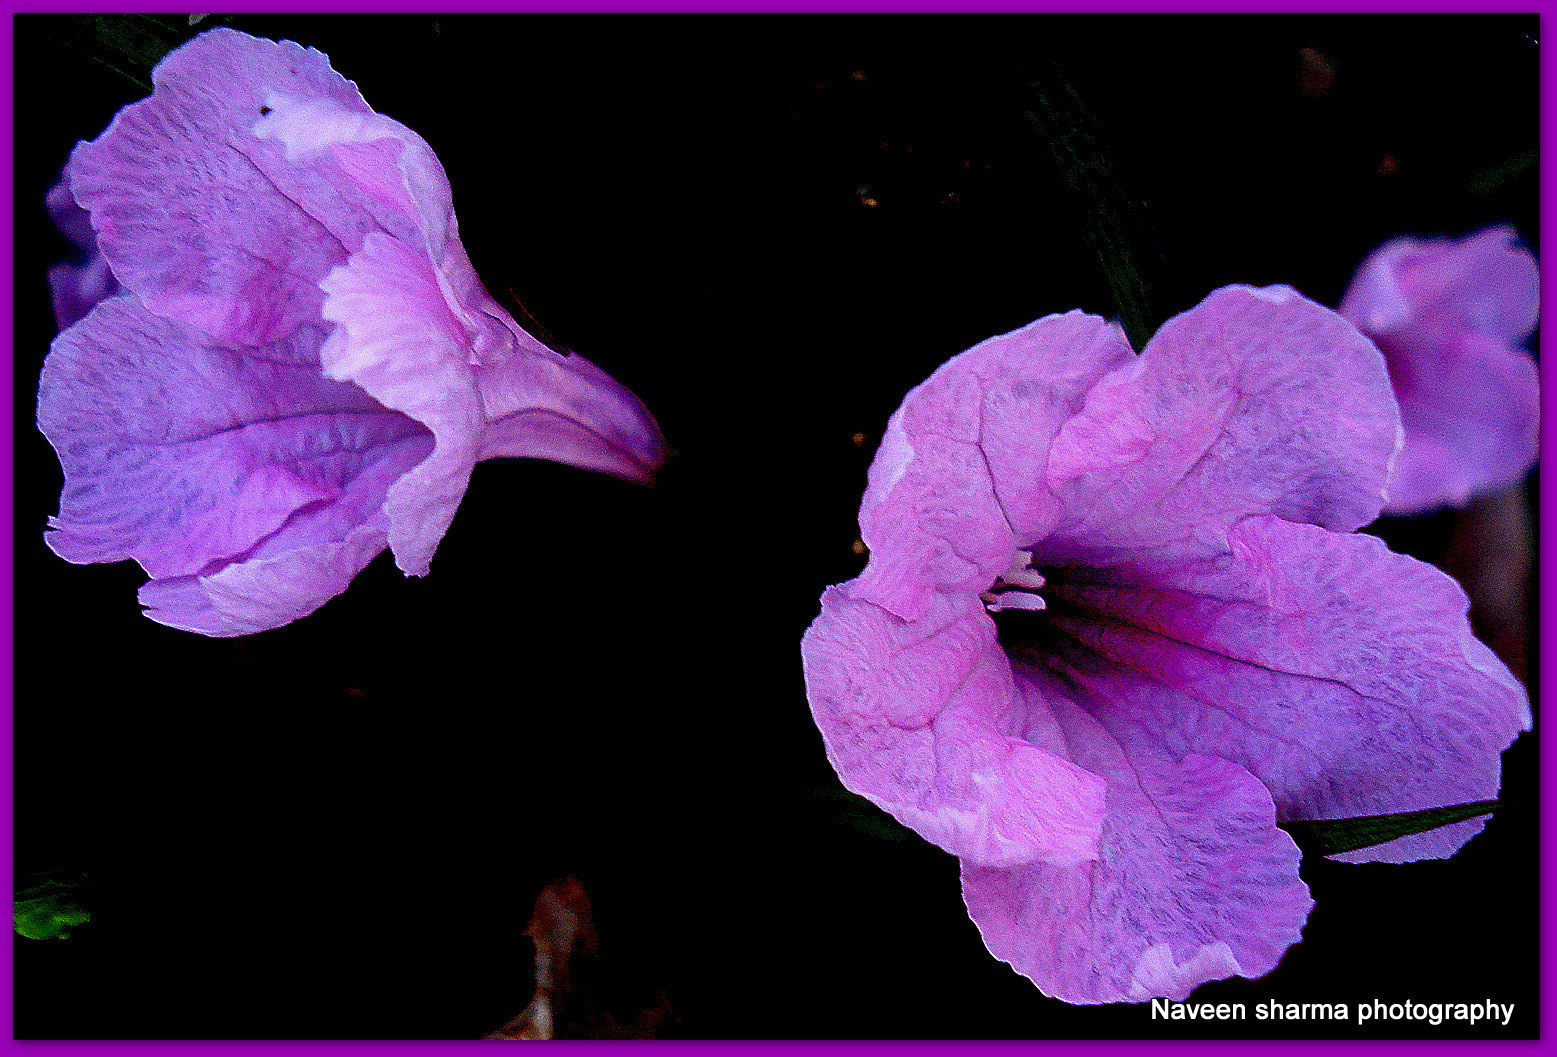 Photograph VIOLET CHARISMA by naveen sharma on 500px